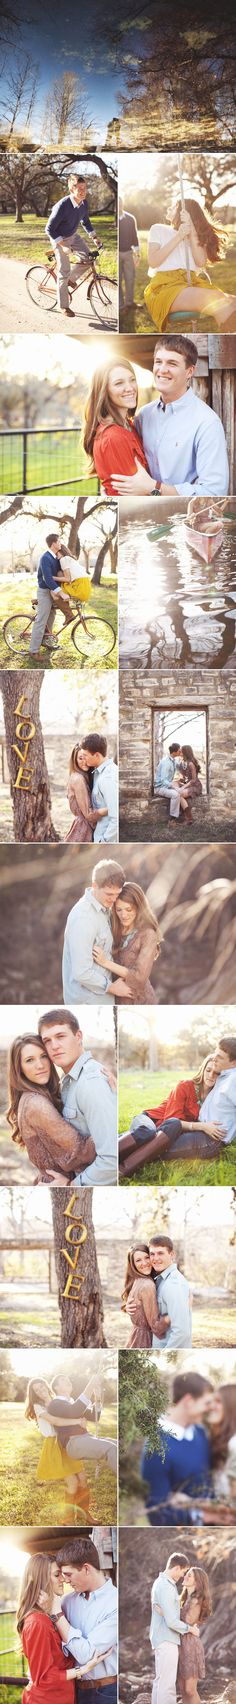 This website has the cutest engagement photo shoots!